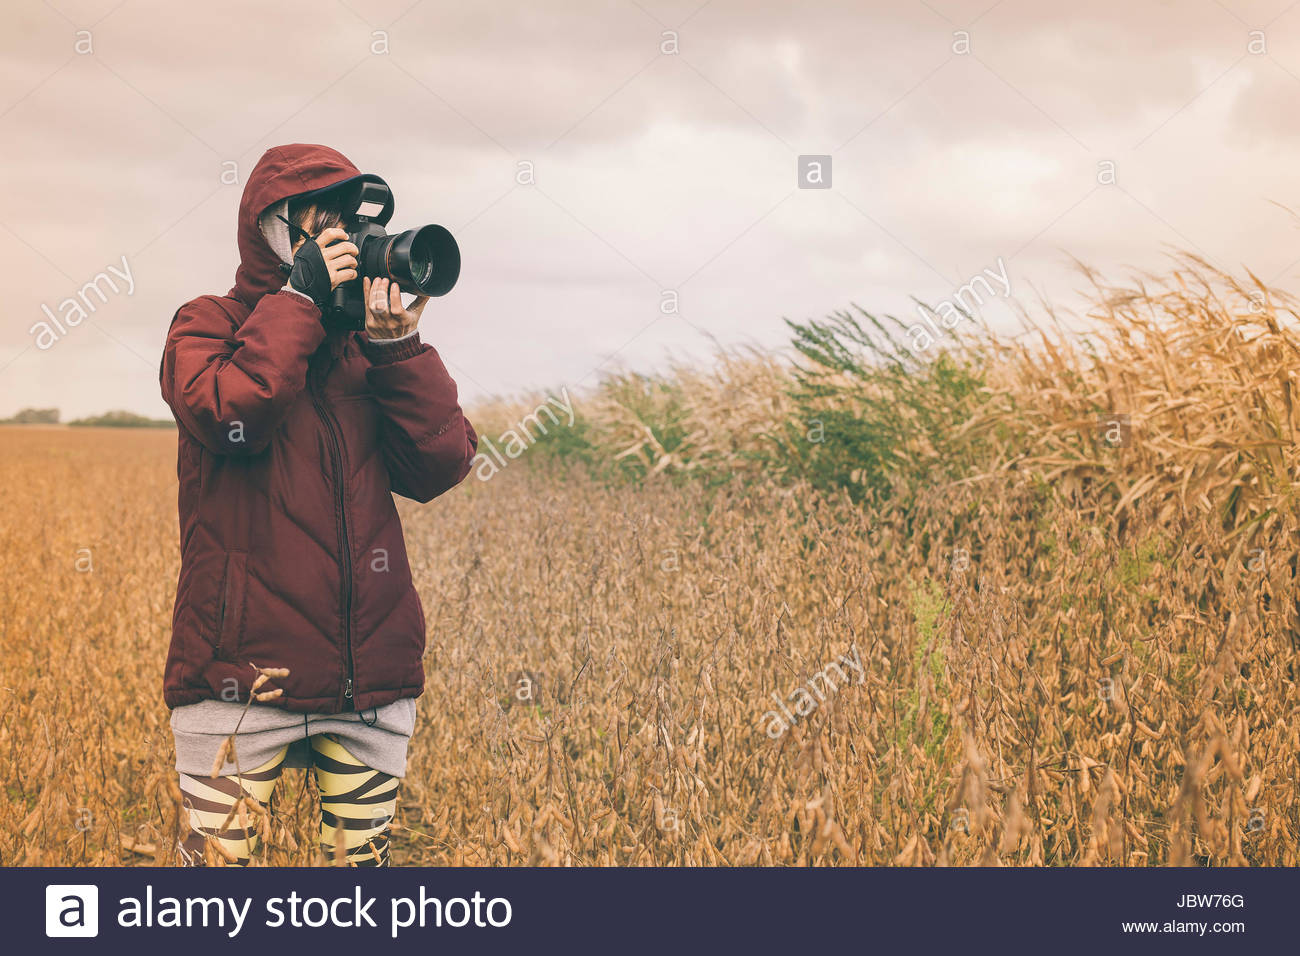 Mid adult woman, standing in field, taking photograph with SLR camera with long lens - Stock Image